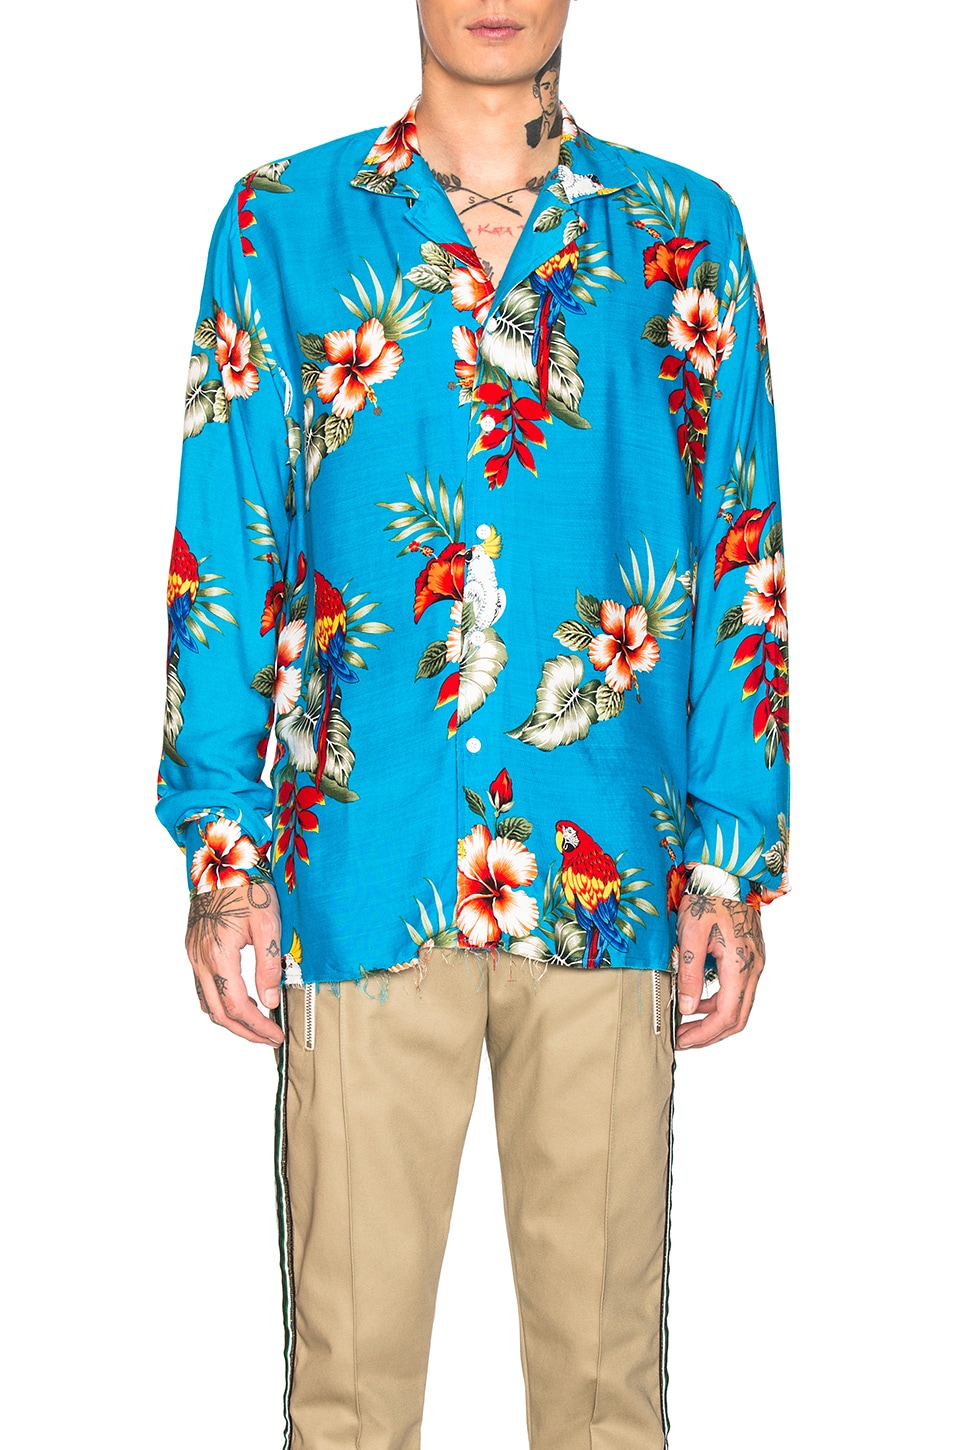 Rhude Hawaiian Birds of Paradies Shirt in Blue